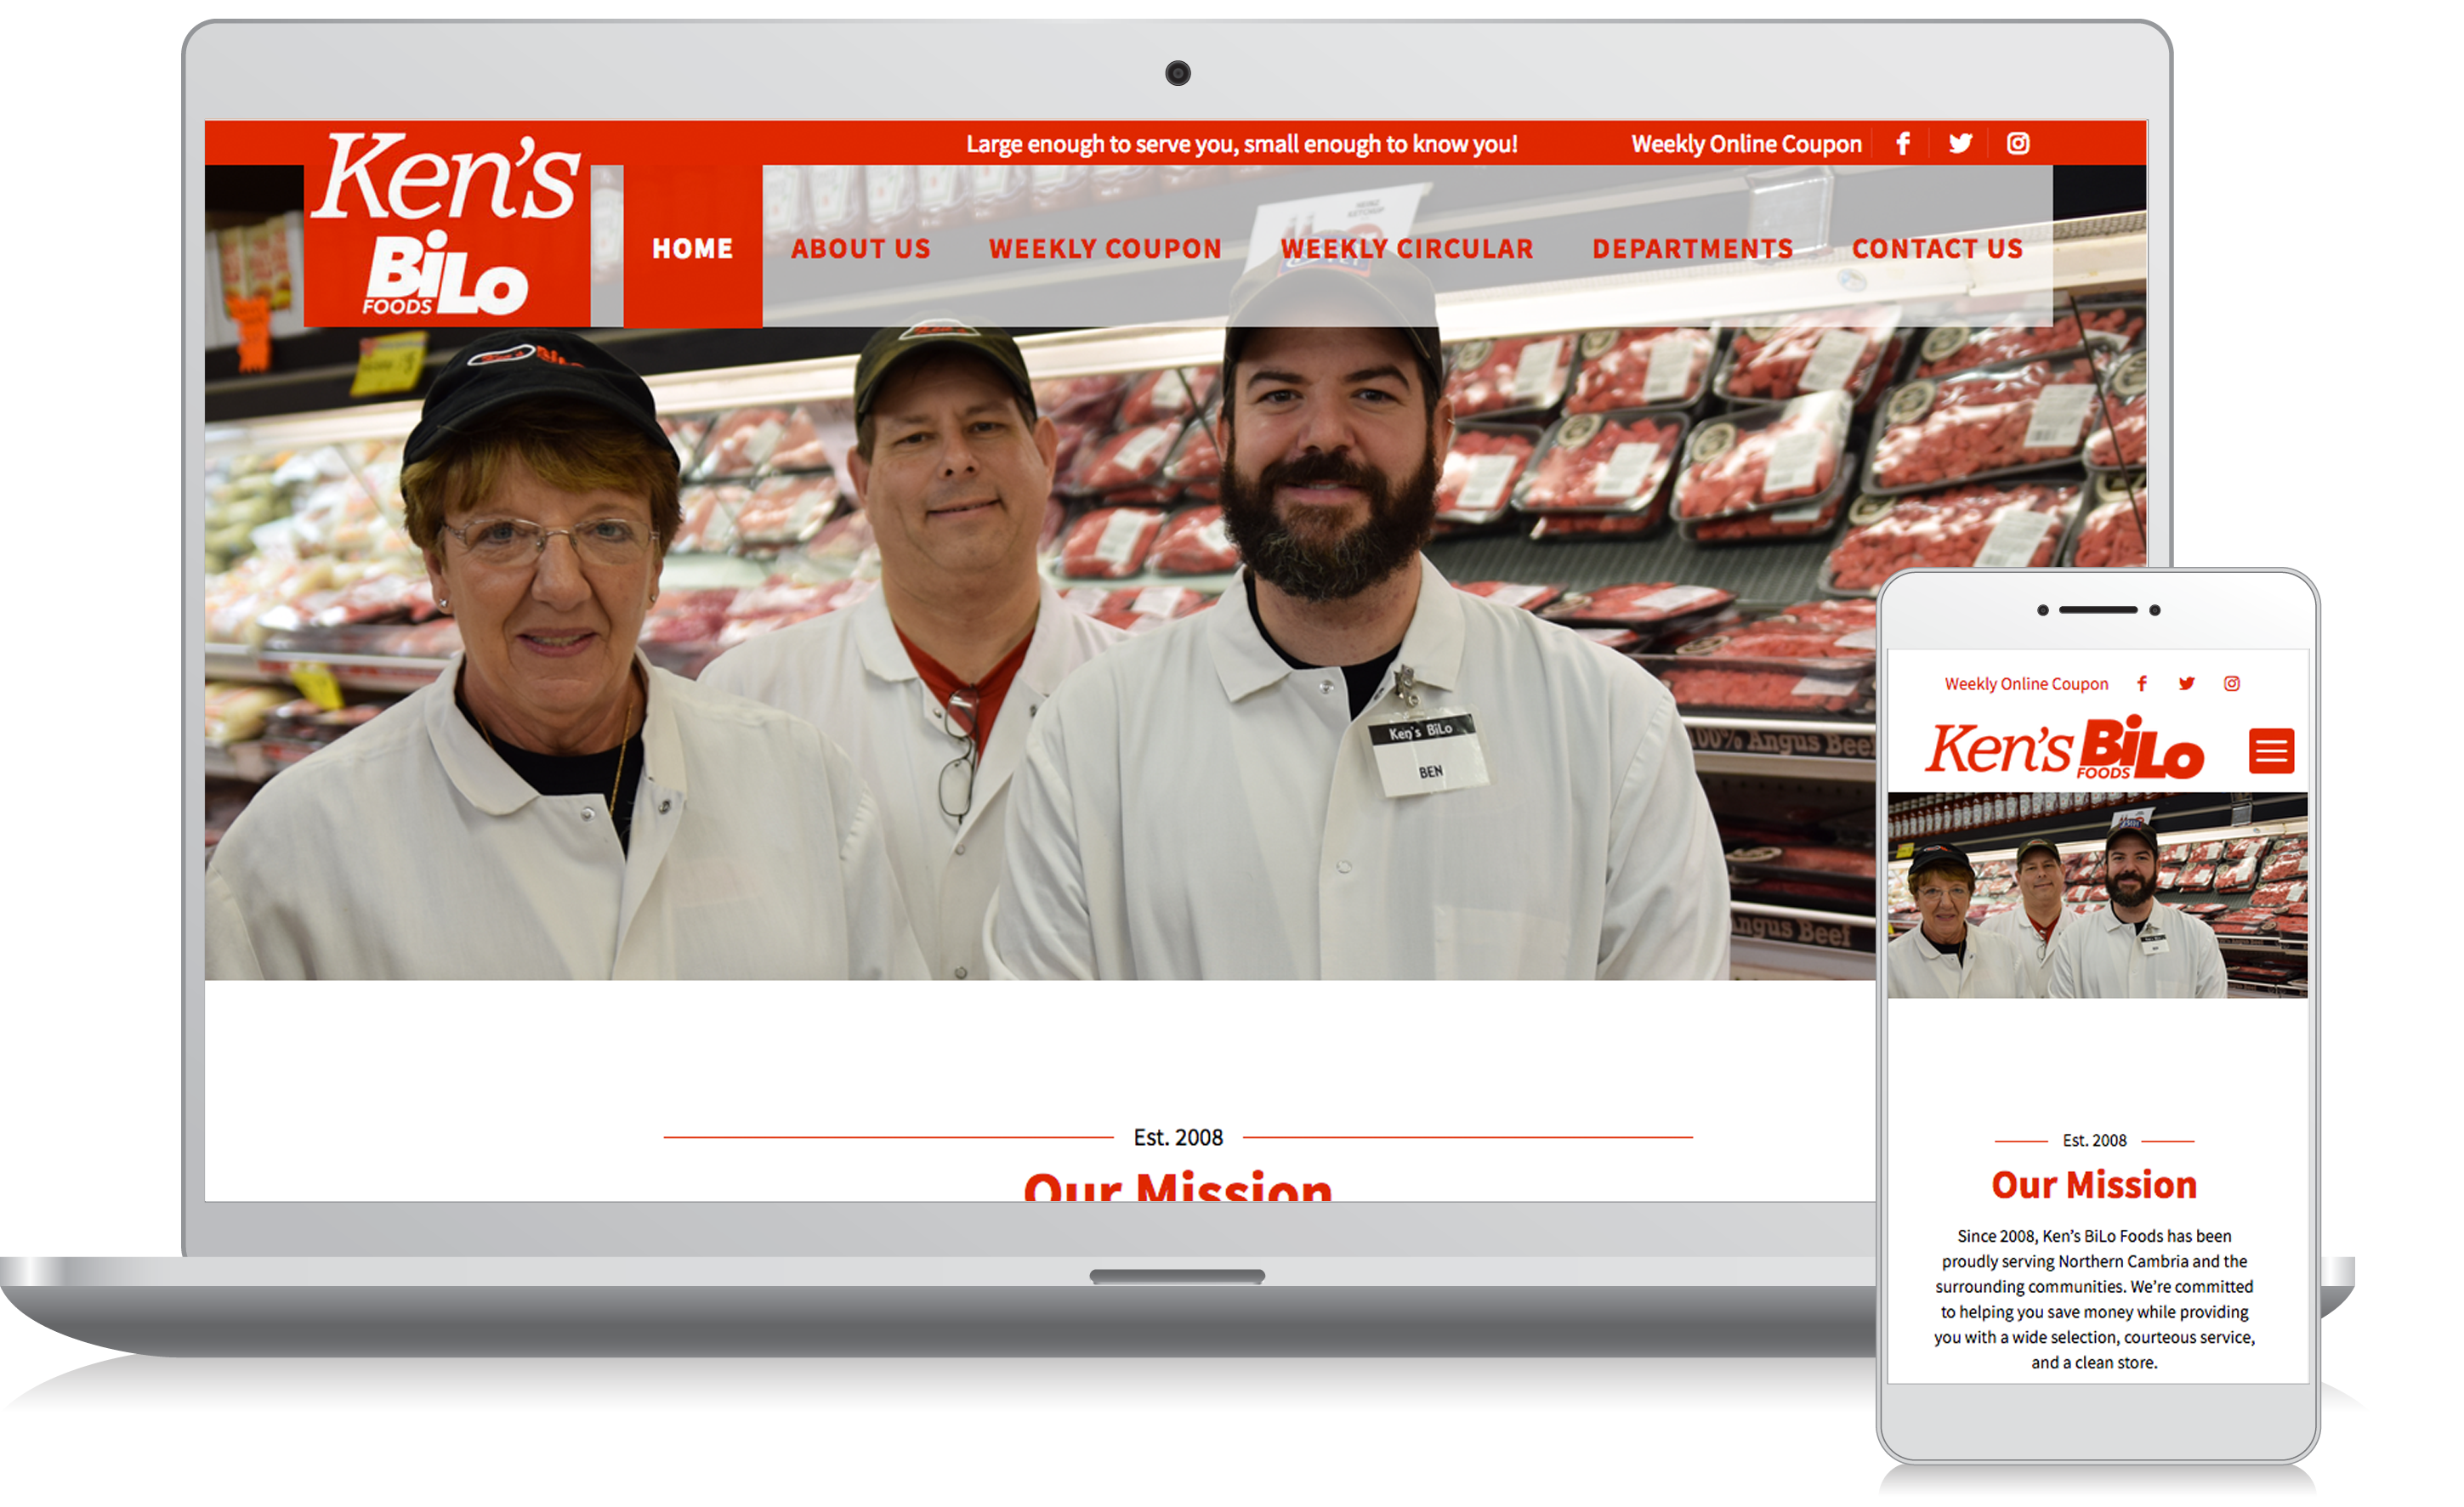 Cellphone and computer image of the Ken's Bilo website homepage